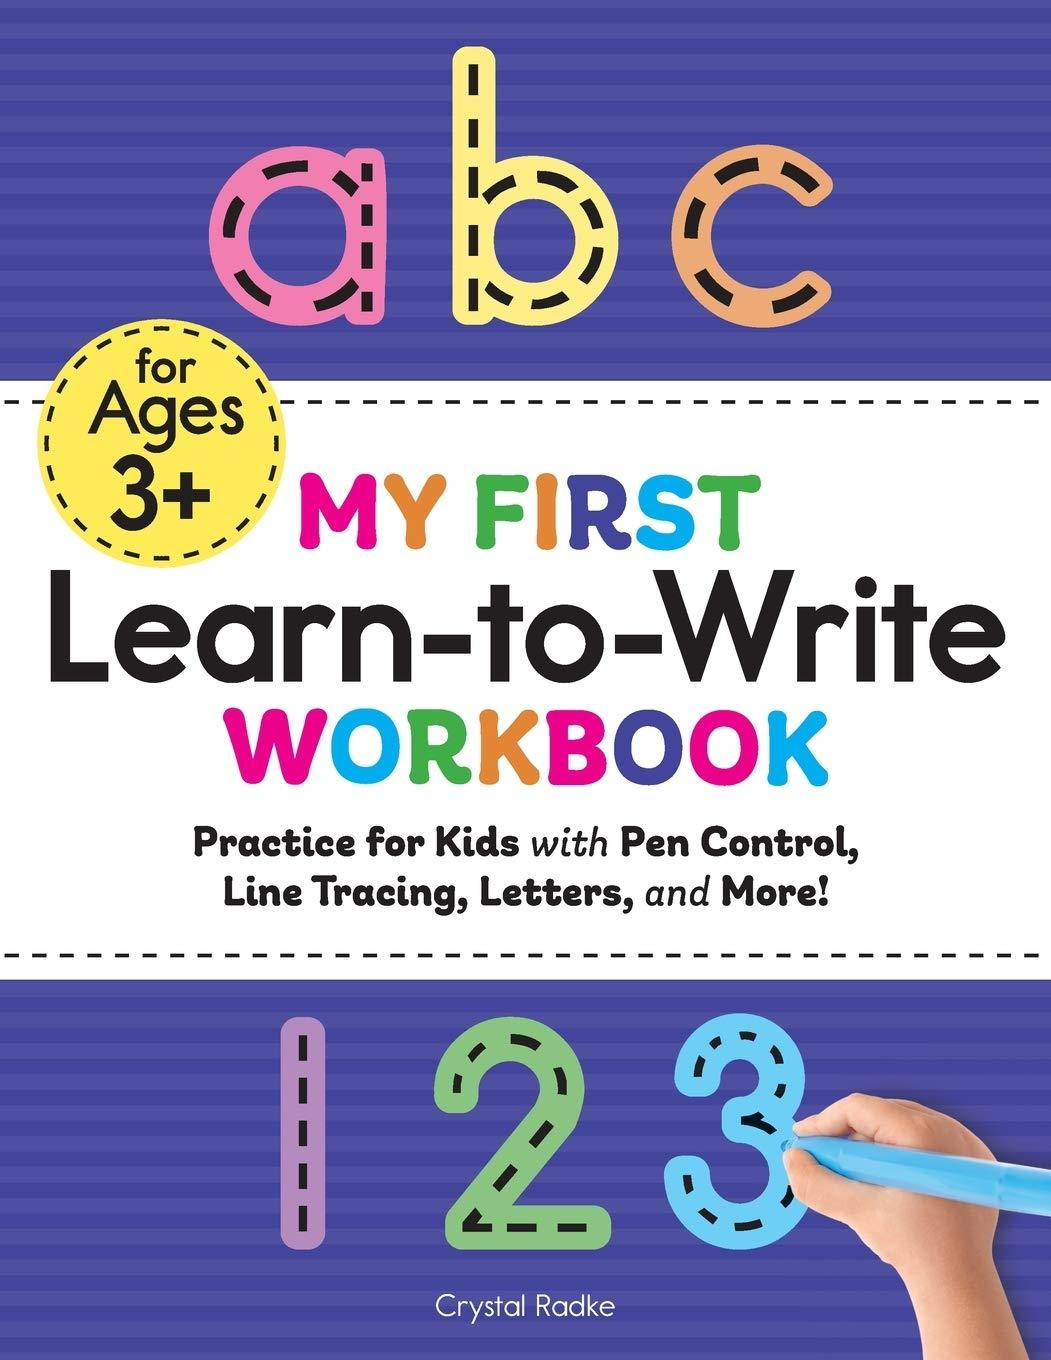 My First Learn to Write Workbook: Practice for Kids (Kids coloring activity books) Paperback - Tolerant Planet